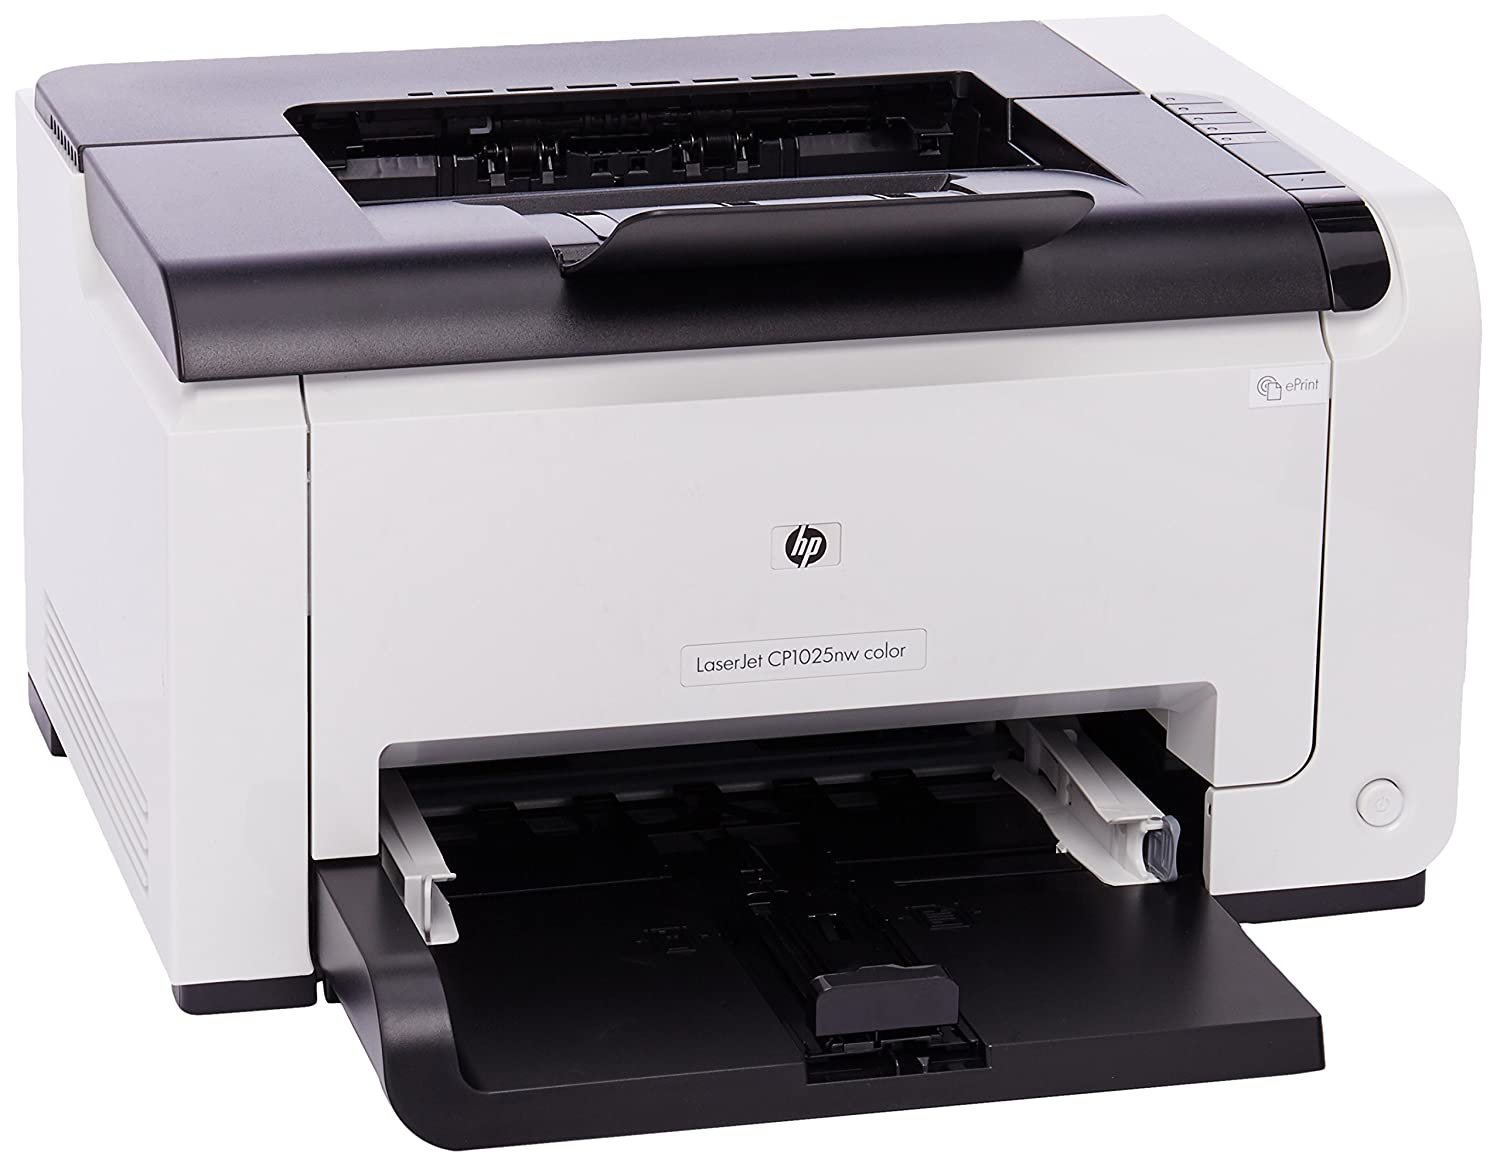 hp laserjet pro cp1025 color printer cost per page coloring pages. Black Bedroom Furniture Sets. Home Design Ideas